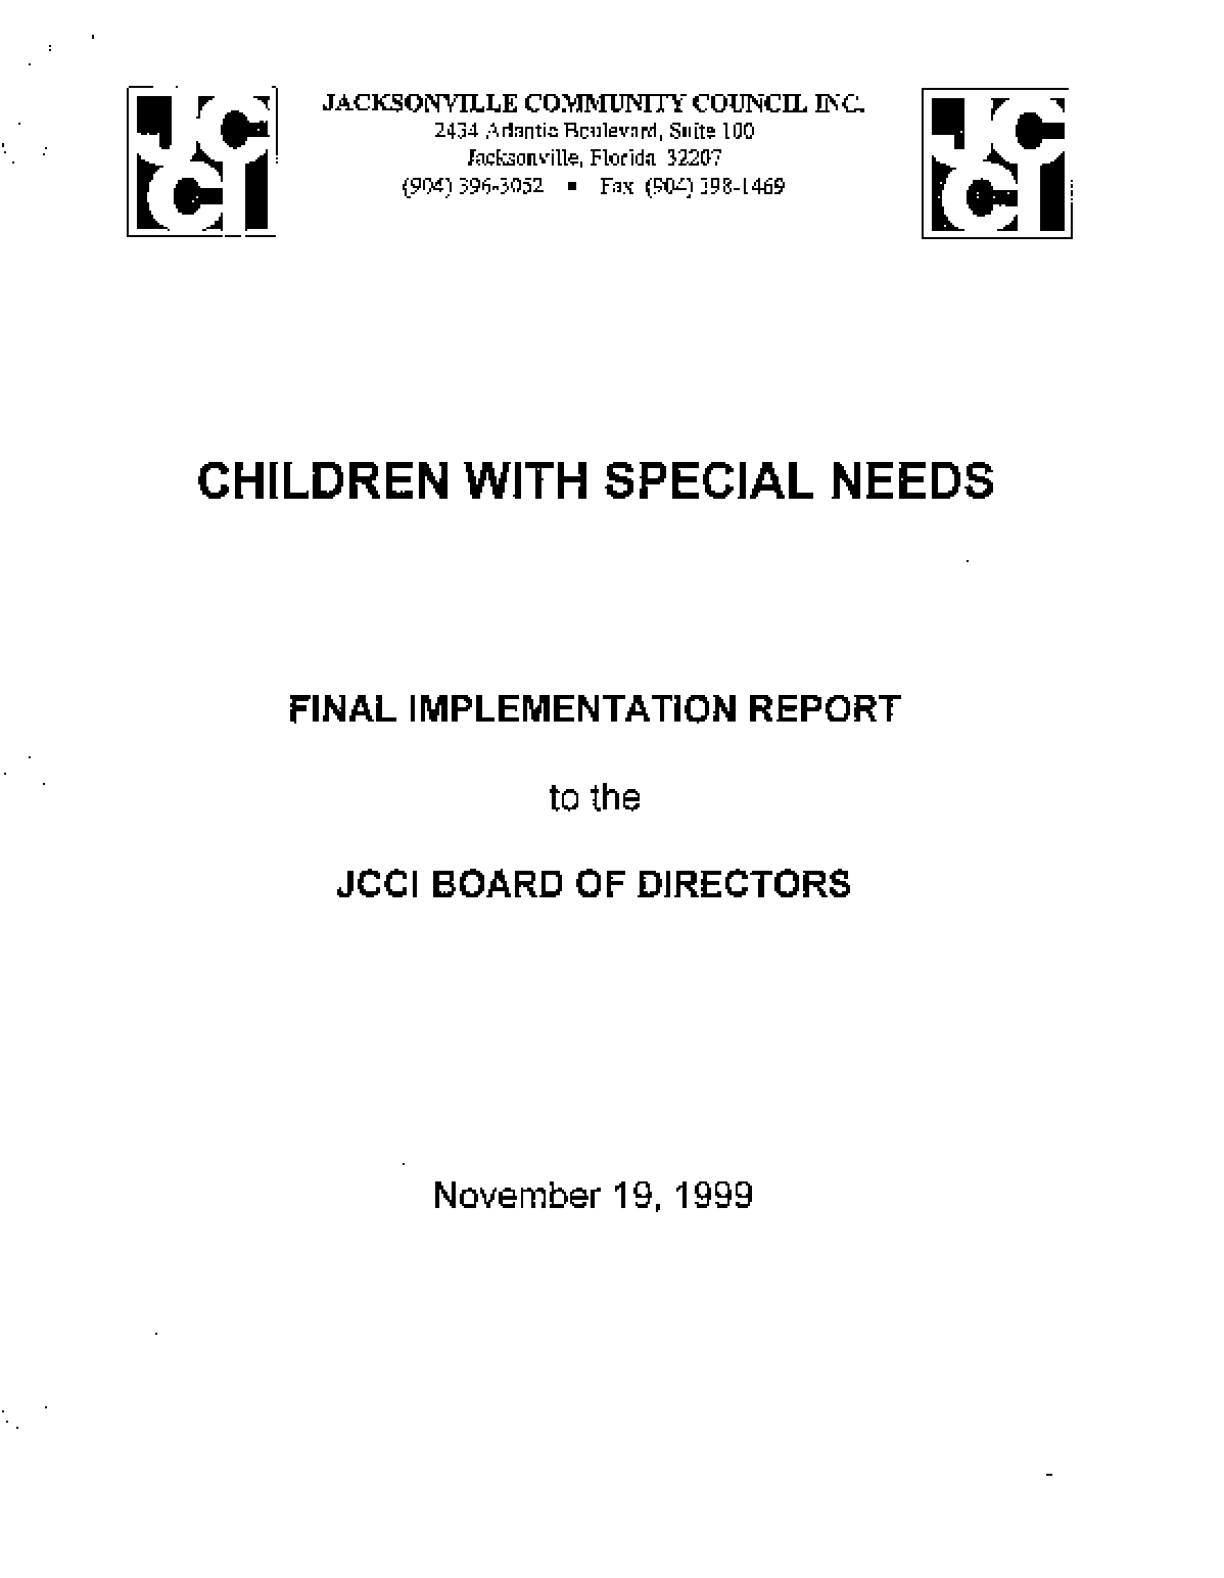 Children With Special Needs: Final Implementaton Report